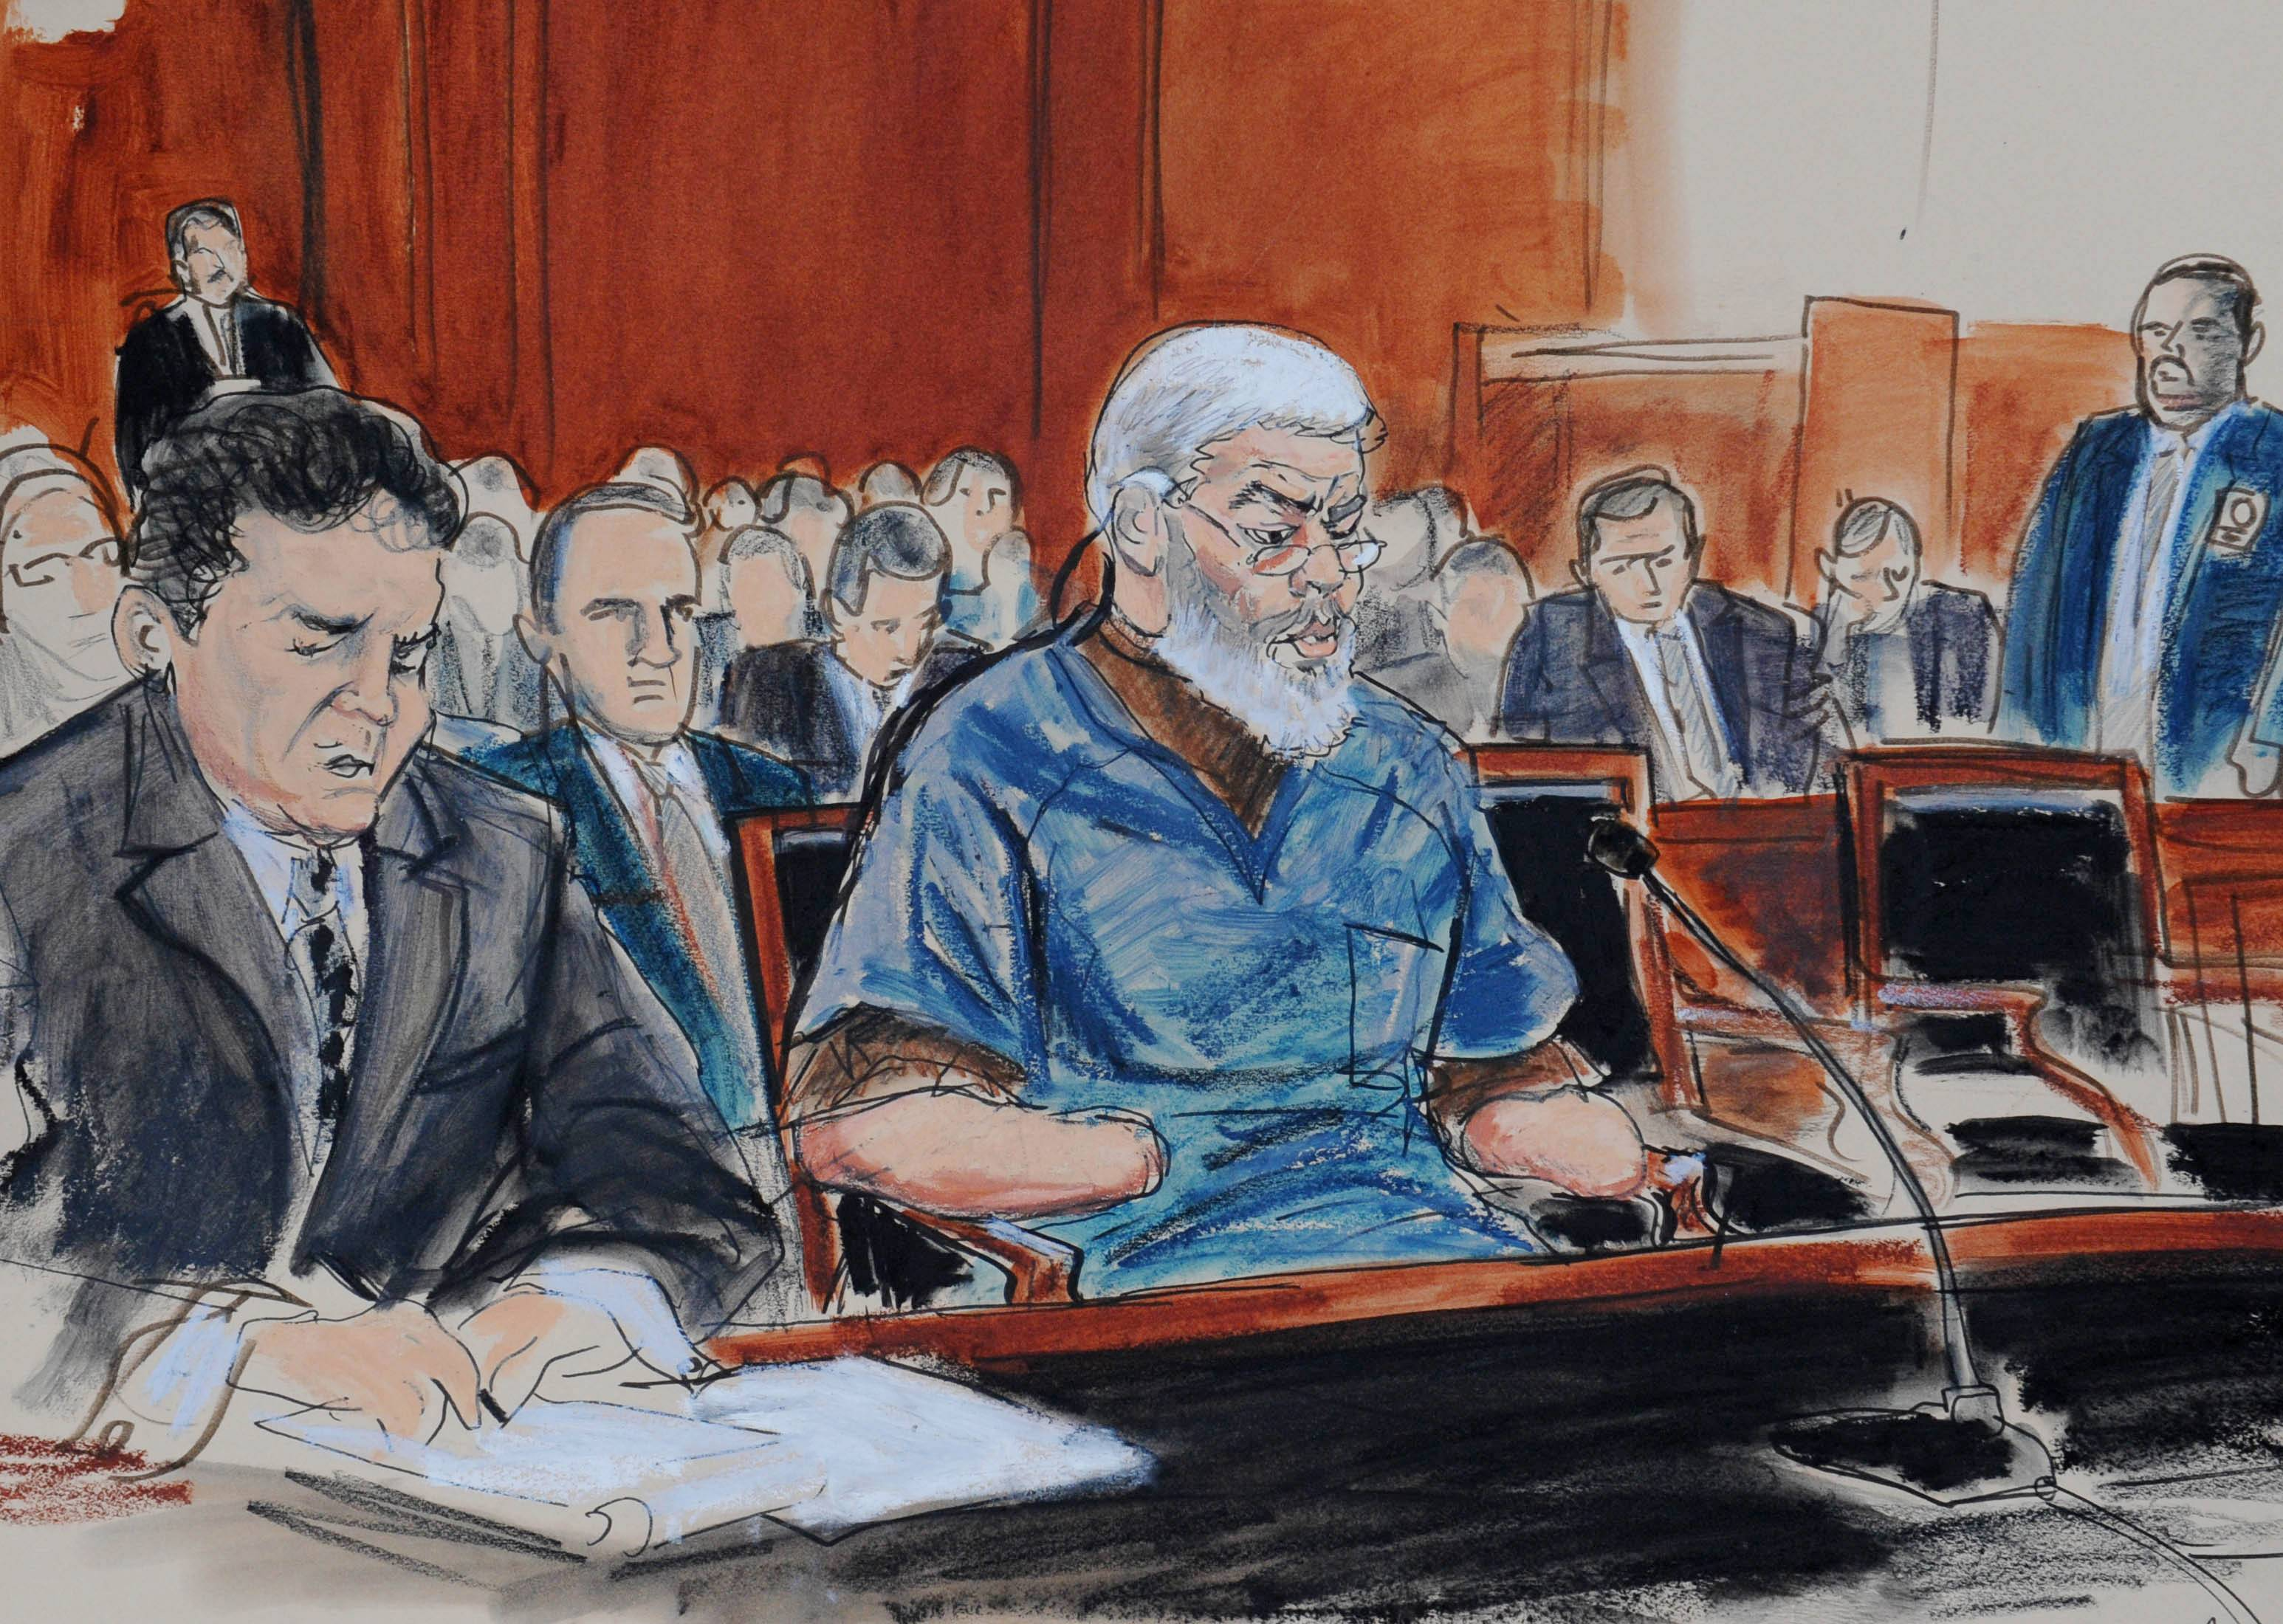 Opening arguments in Mustafa Kamel Mustafa's terrorism trial began in New York on Thursday, April 17, 2014. Federal prosecutors accused Mustafa of training and aiding terrorists in the 1990s while hiding in plain sight as the leader of a London mosque, while Mustafa's attorney told jurors his client had never harmed Americans and did not participate in any of the acts charged in the case.